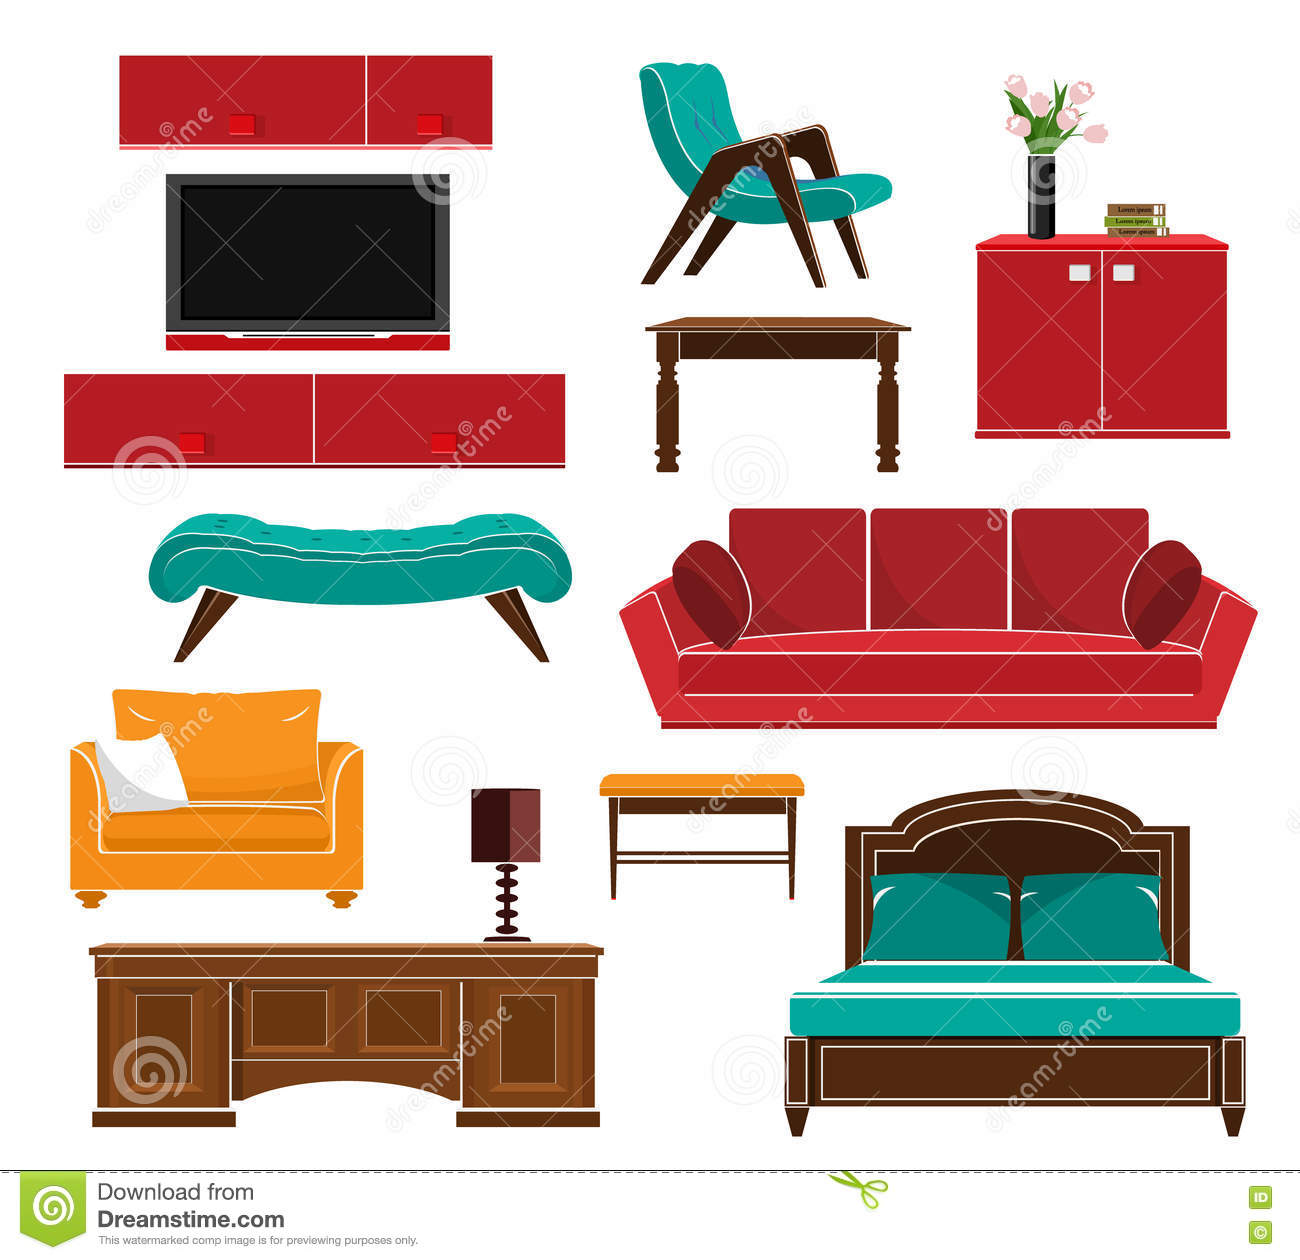 Simple table free other icons - Stylish Simple Style Furniture Icons Set Sofa Table Armchair Chair Cupboard Bed Flat Style